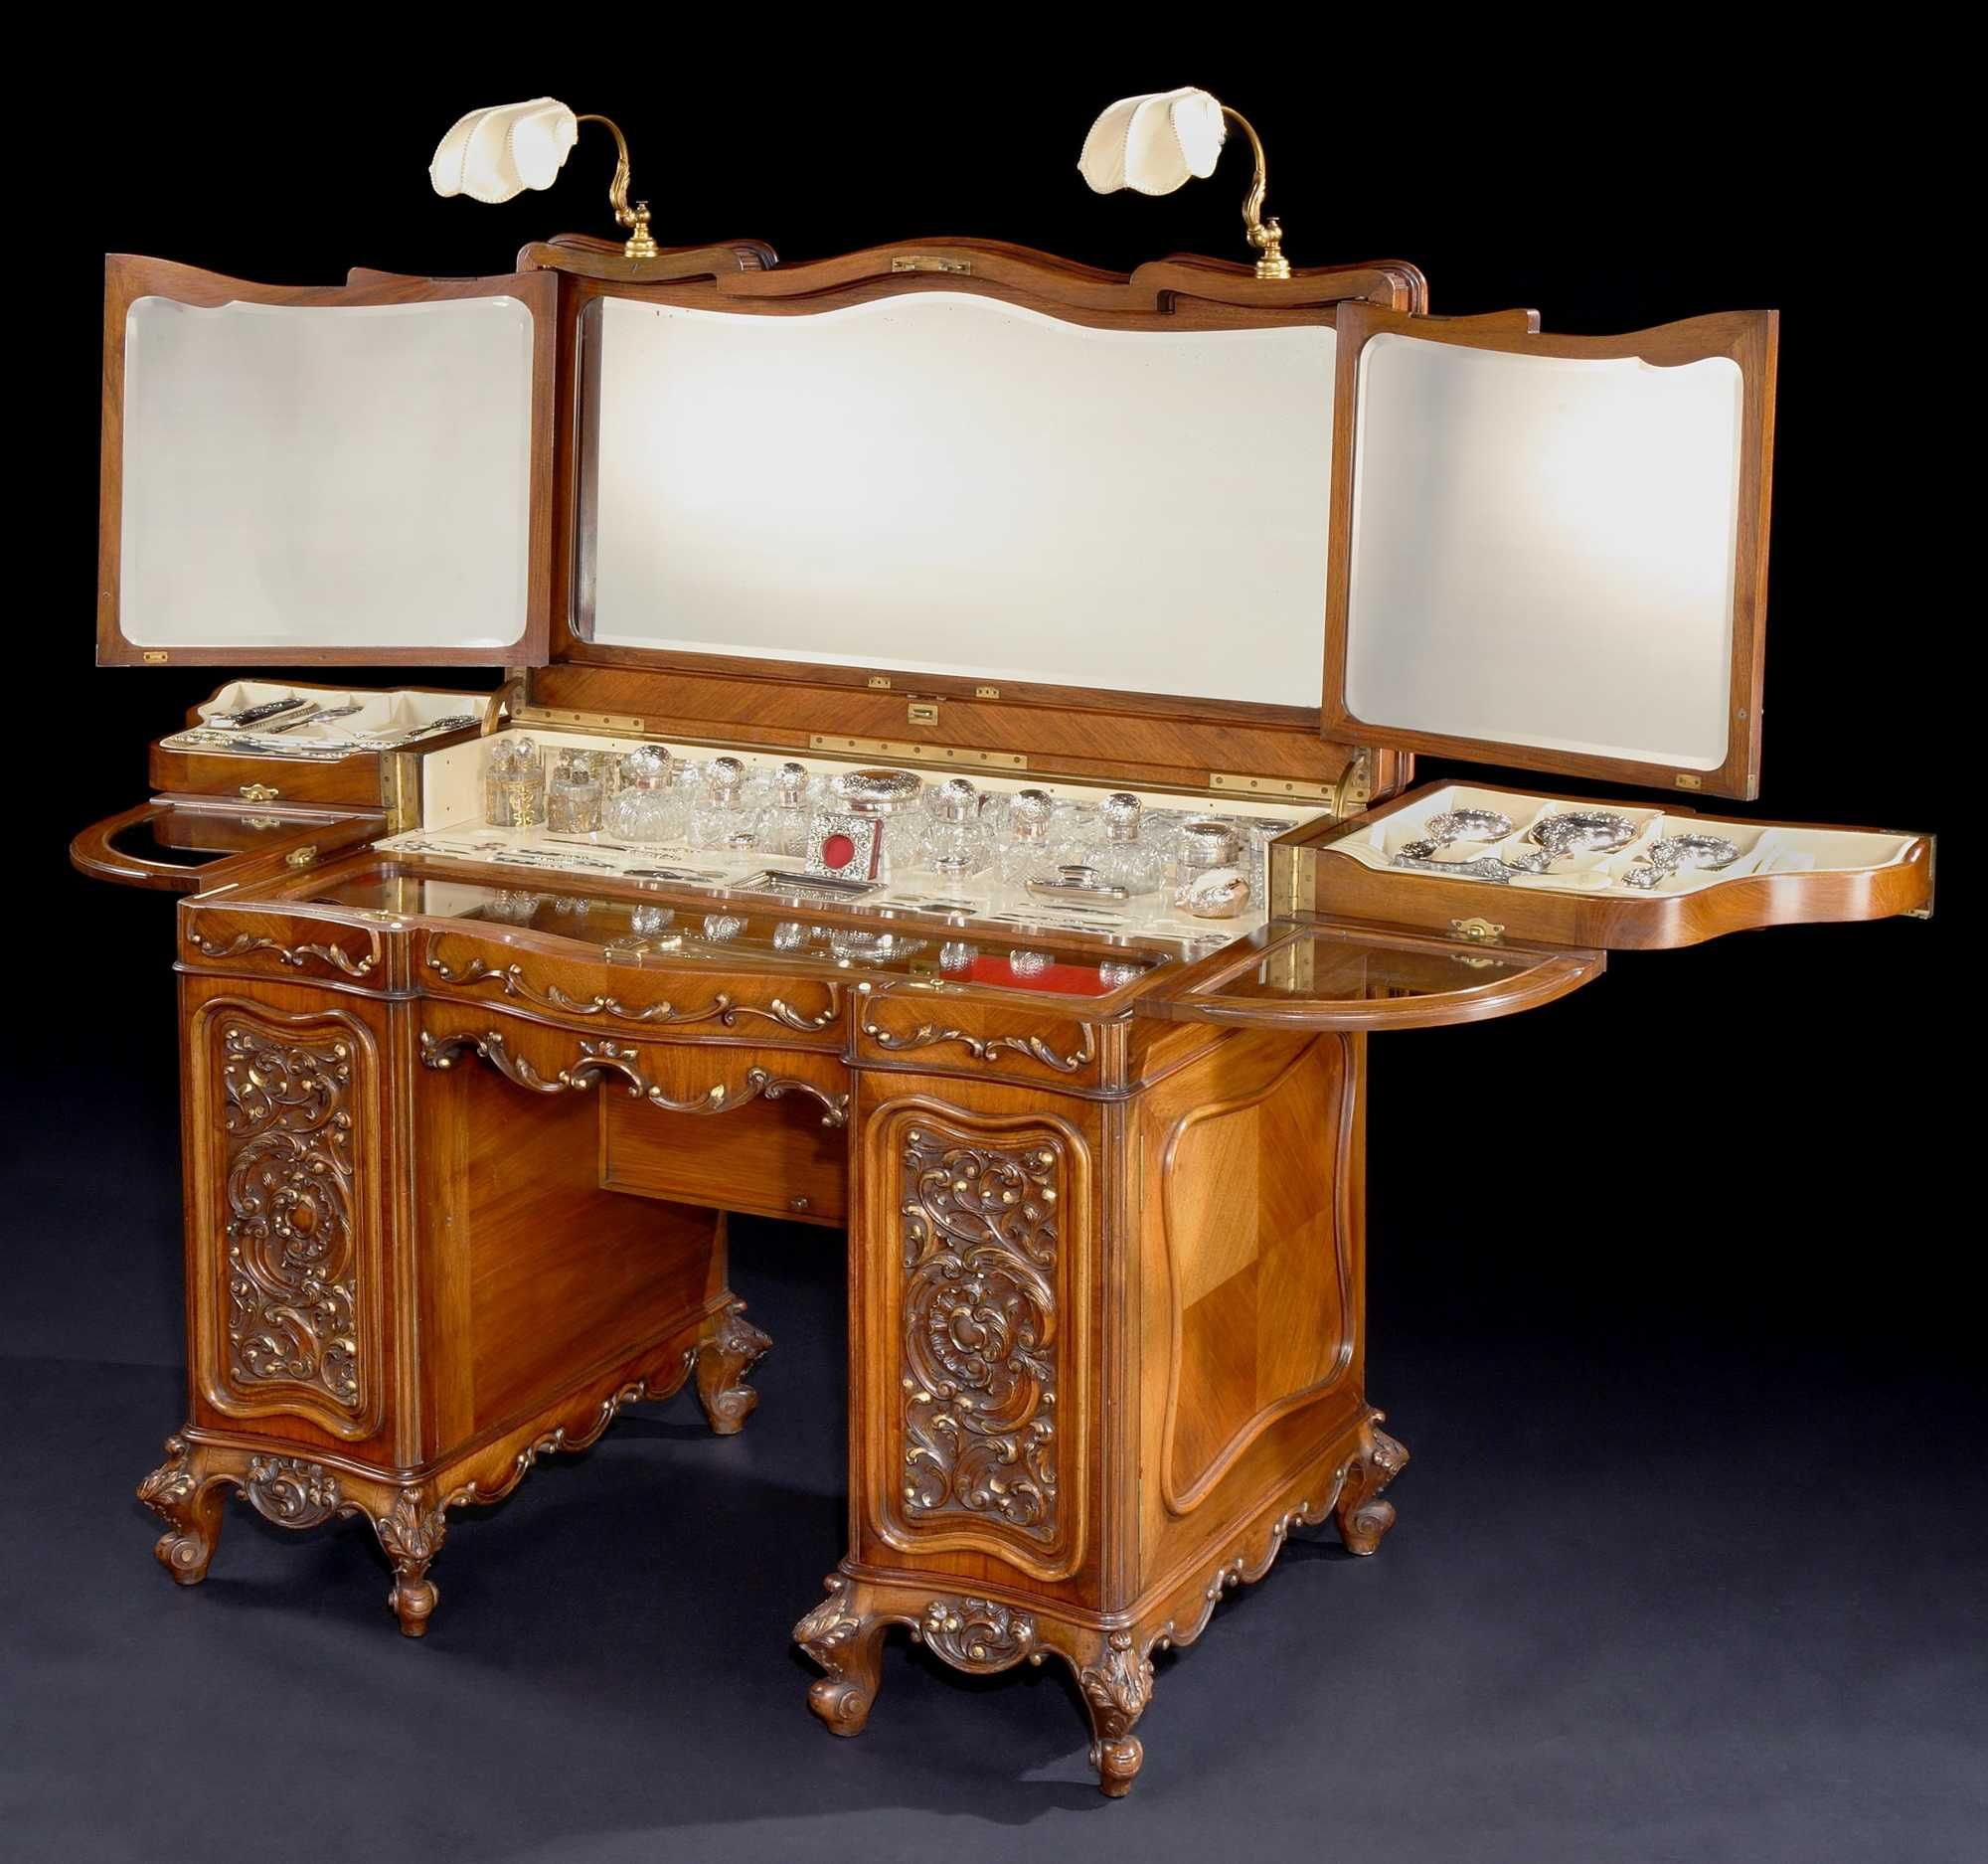 George Betjemann & Sons - An Antique Ladies Dressing Table ...